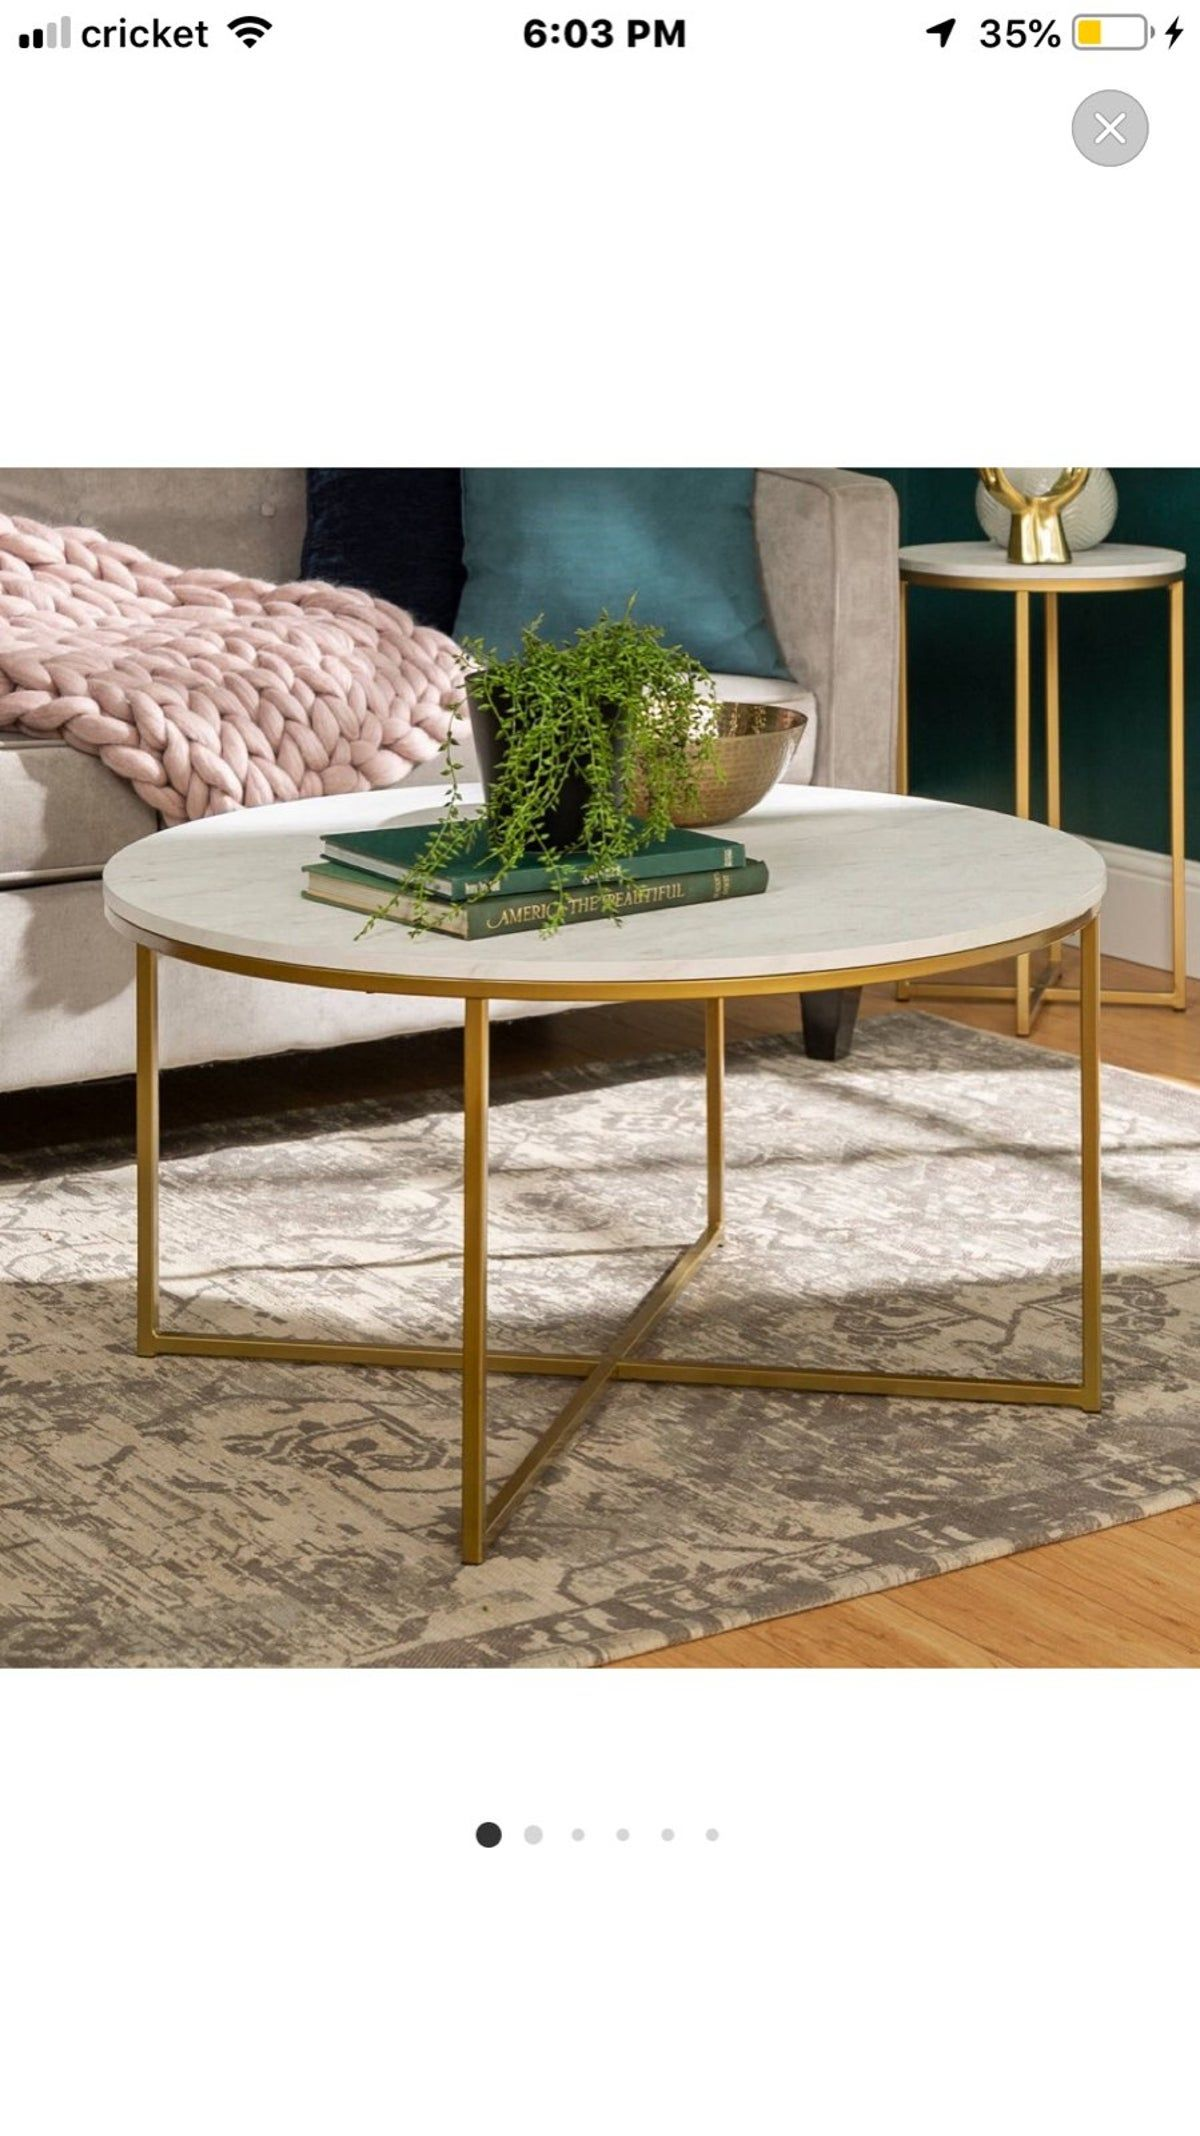 Saracina Home Faux Marble Coffee Table In 2020 Faux Marble Coffee Table Coffee Table Saracina Home [ 2136 x 1200 Pixel ]